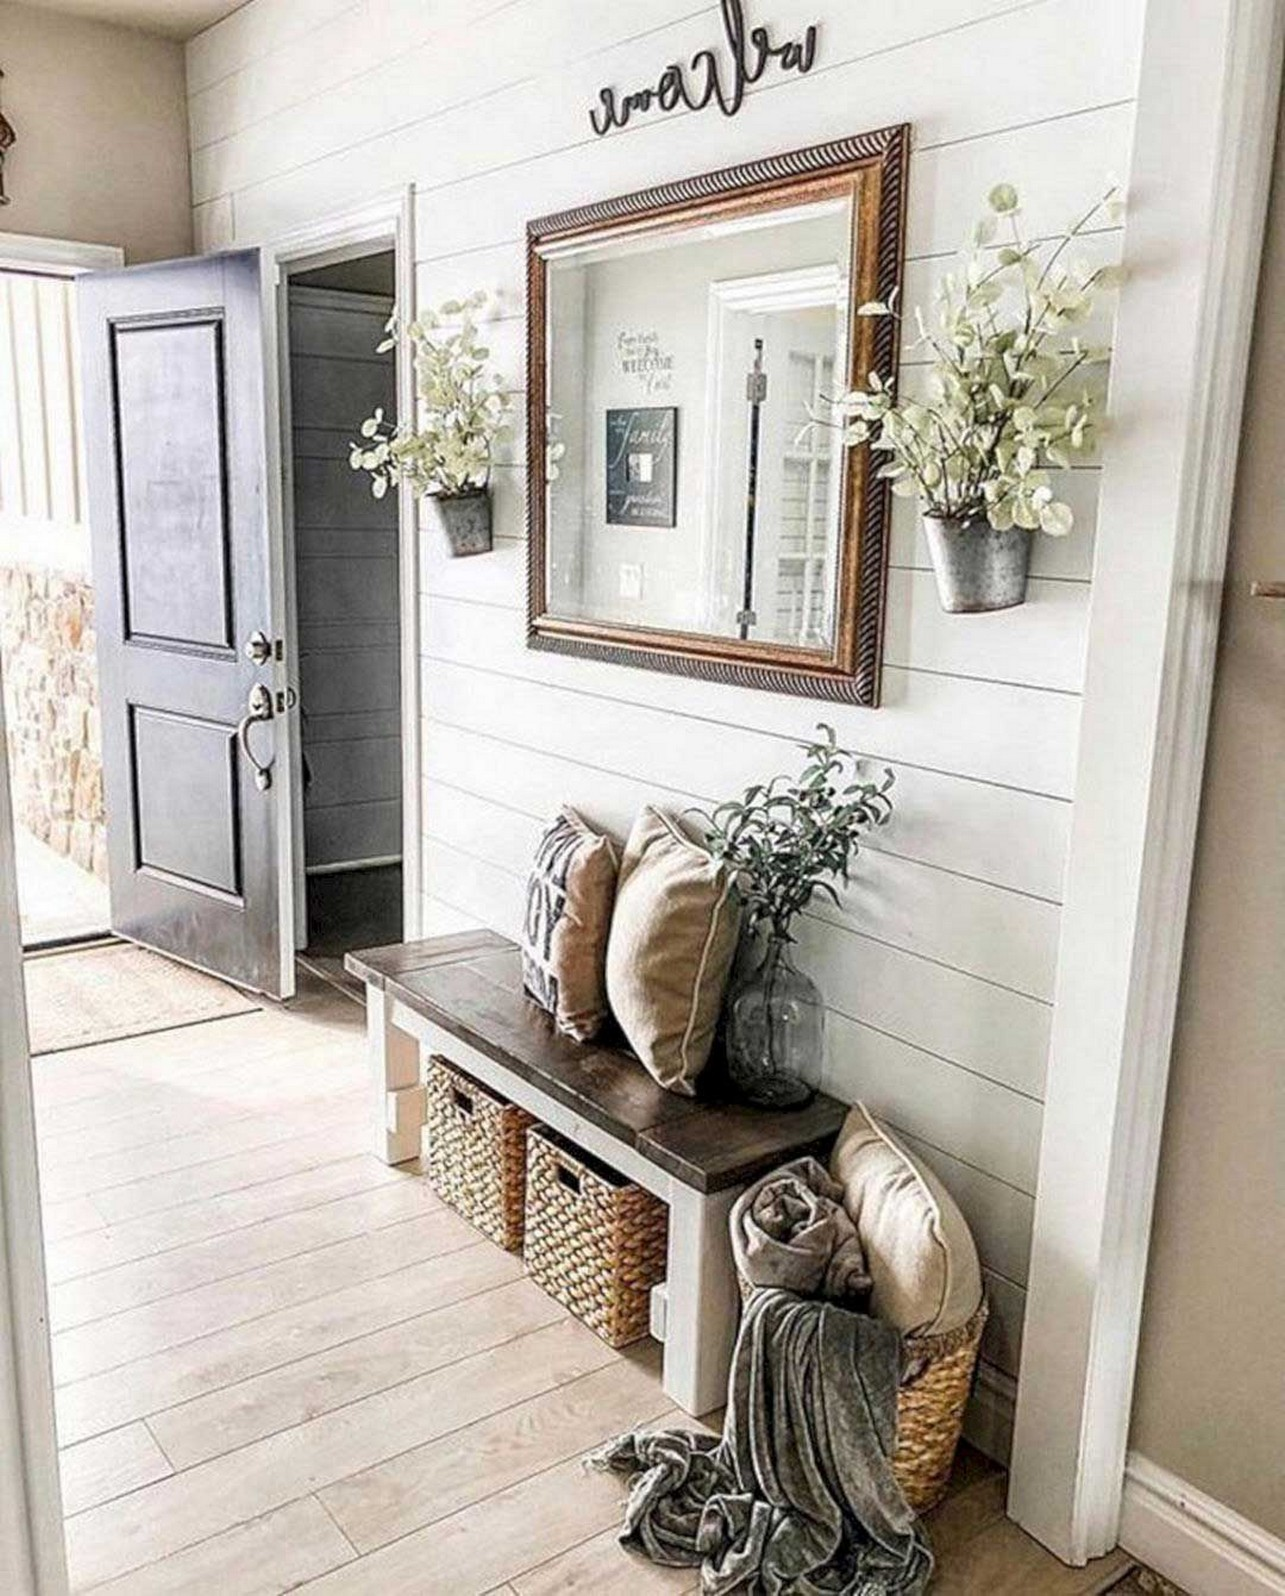 67 Rustic Home Decorating Ideas In 2020 Home Decor 27